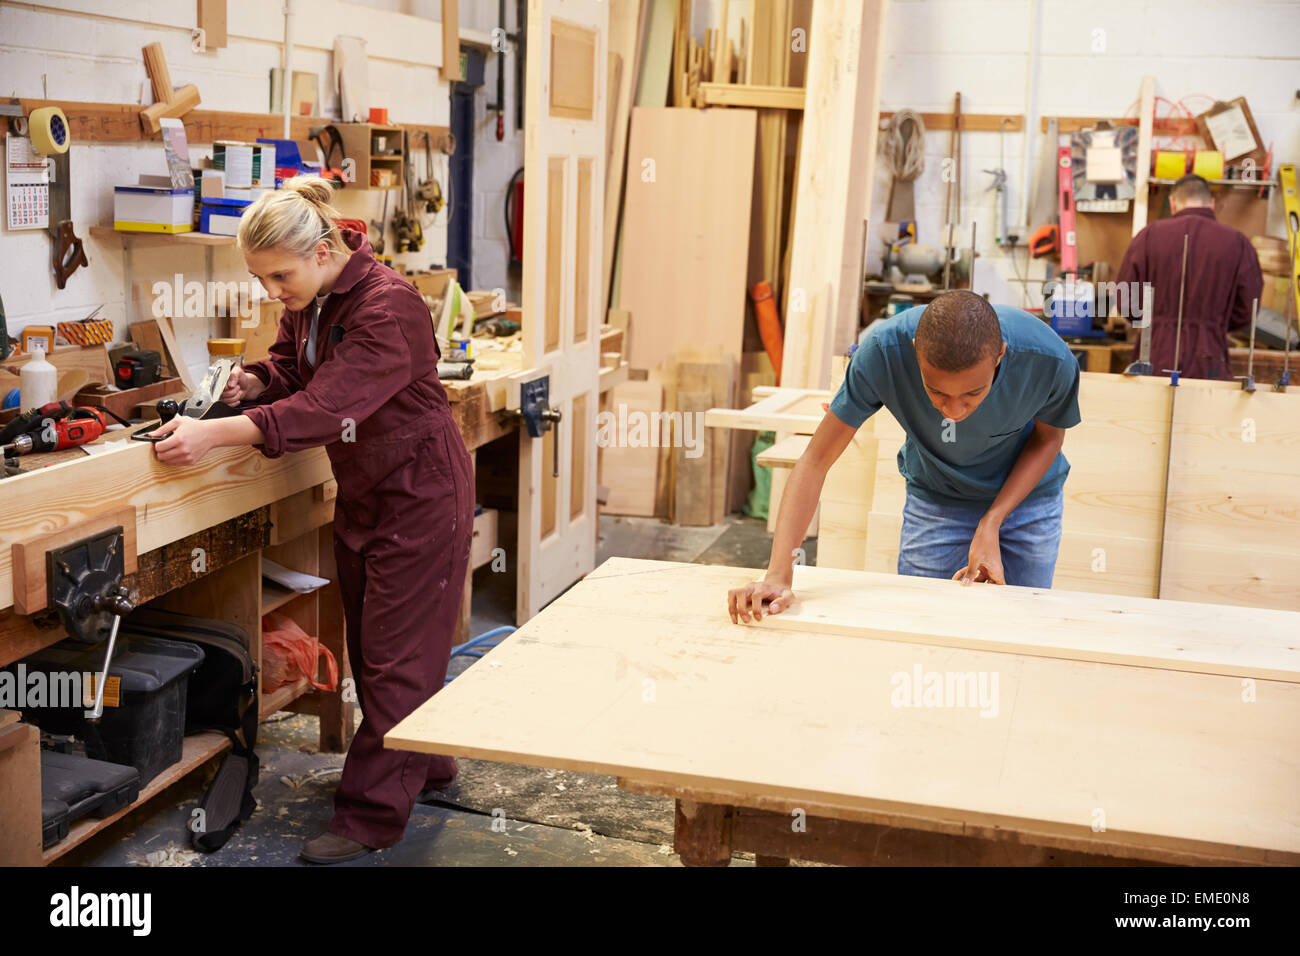 Staff Working In Busy Carpentry Workshop - Stock Image